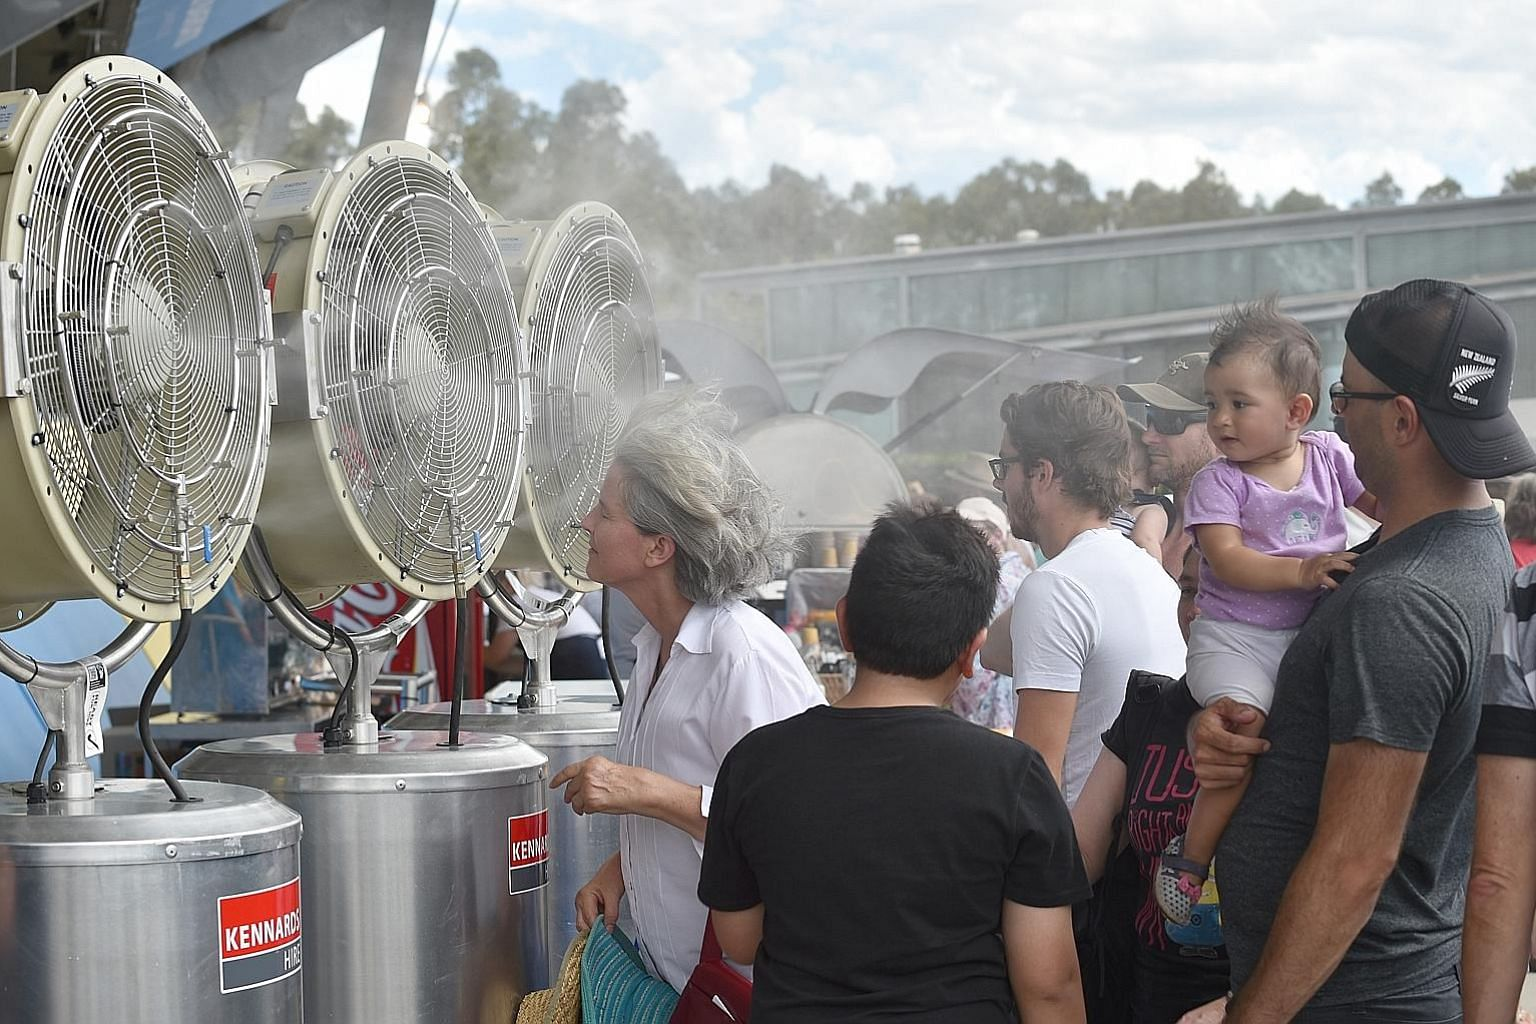 People trying to cool themselves down in Sydney earlier this year when the temperature soared to 40 deg C.